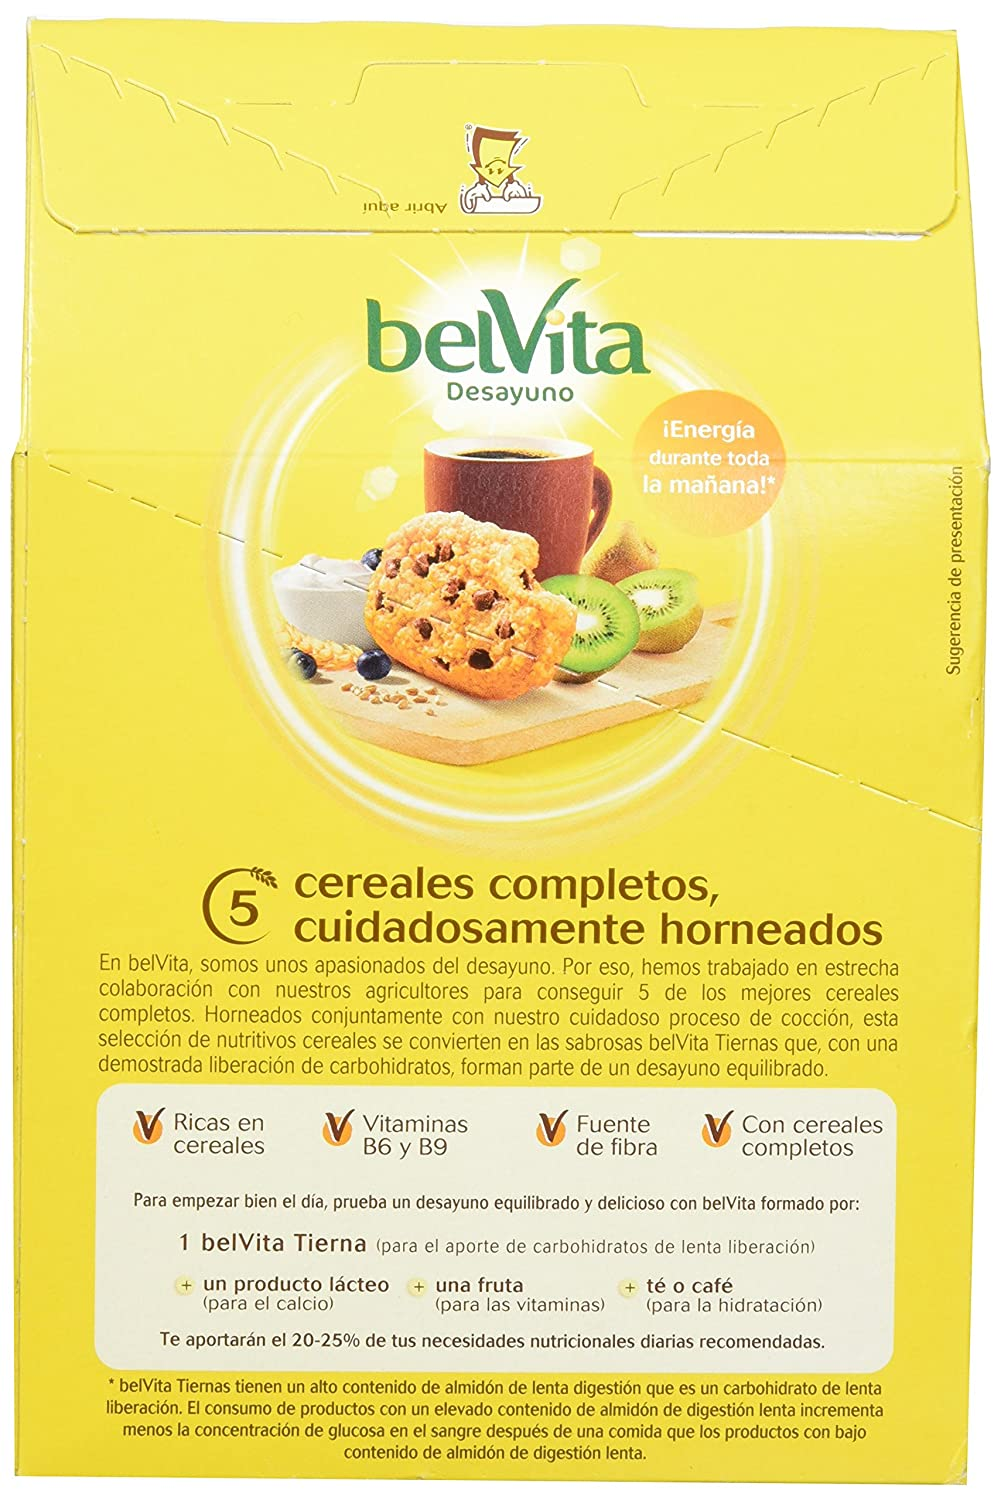 Fontaneda Galletas Belvita Tiernas Chocolate - 250 gr: Amazon.es: Amazon Pantry